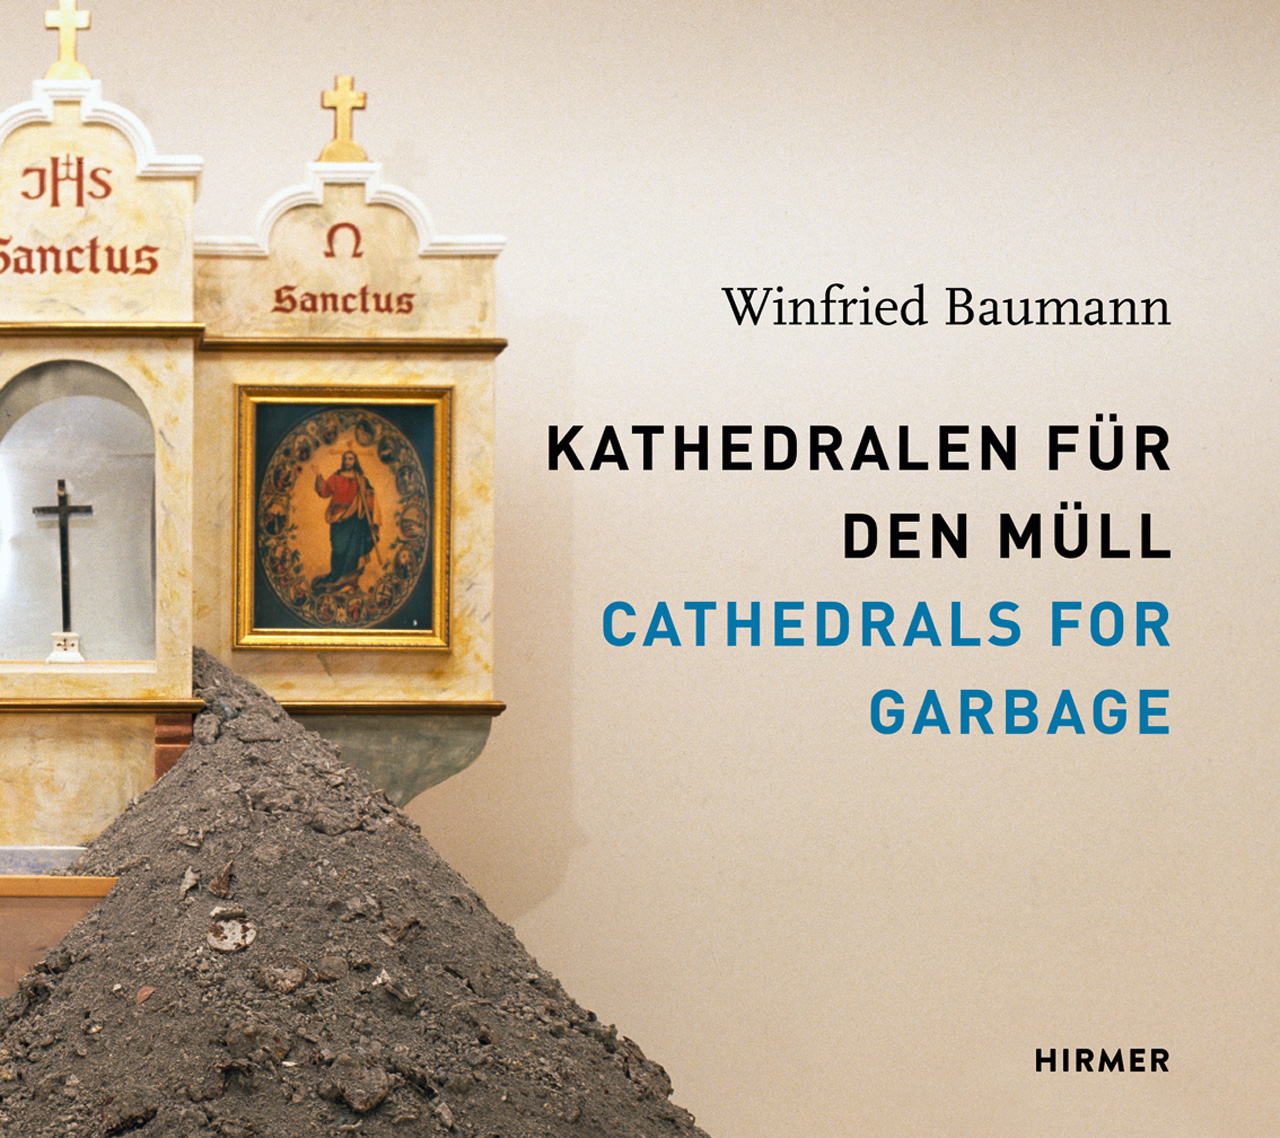 Cathedrals for Garbage